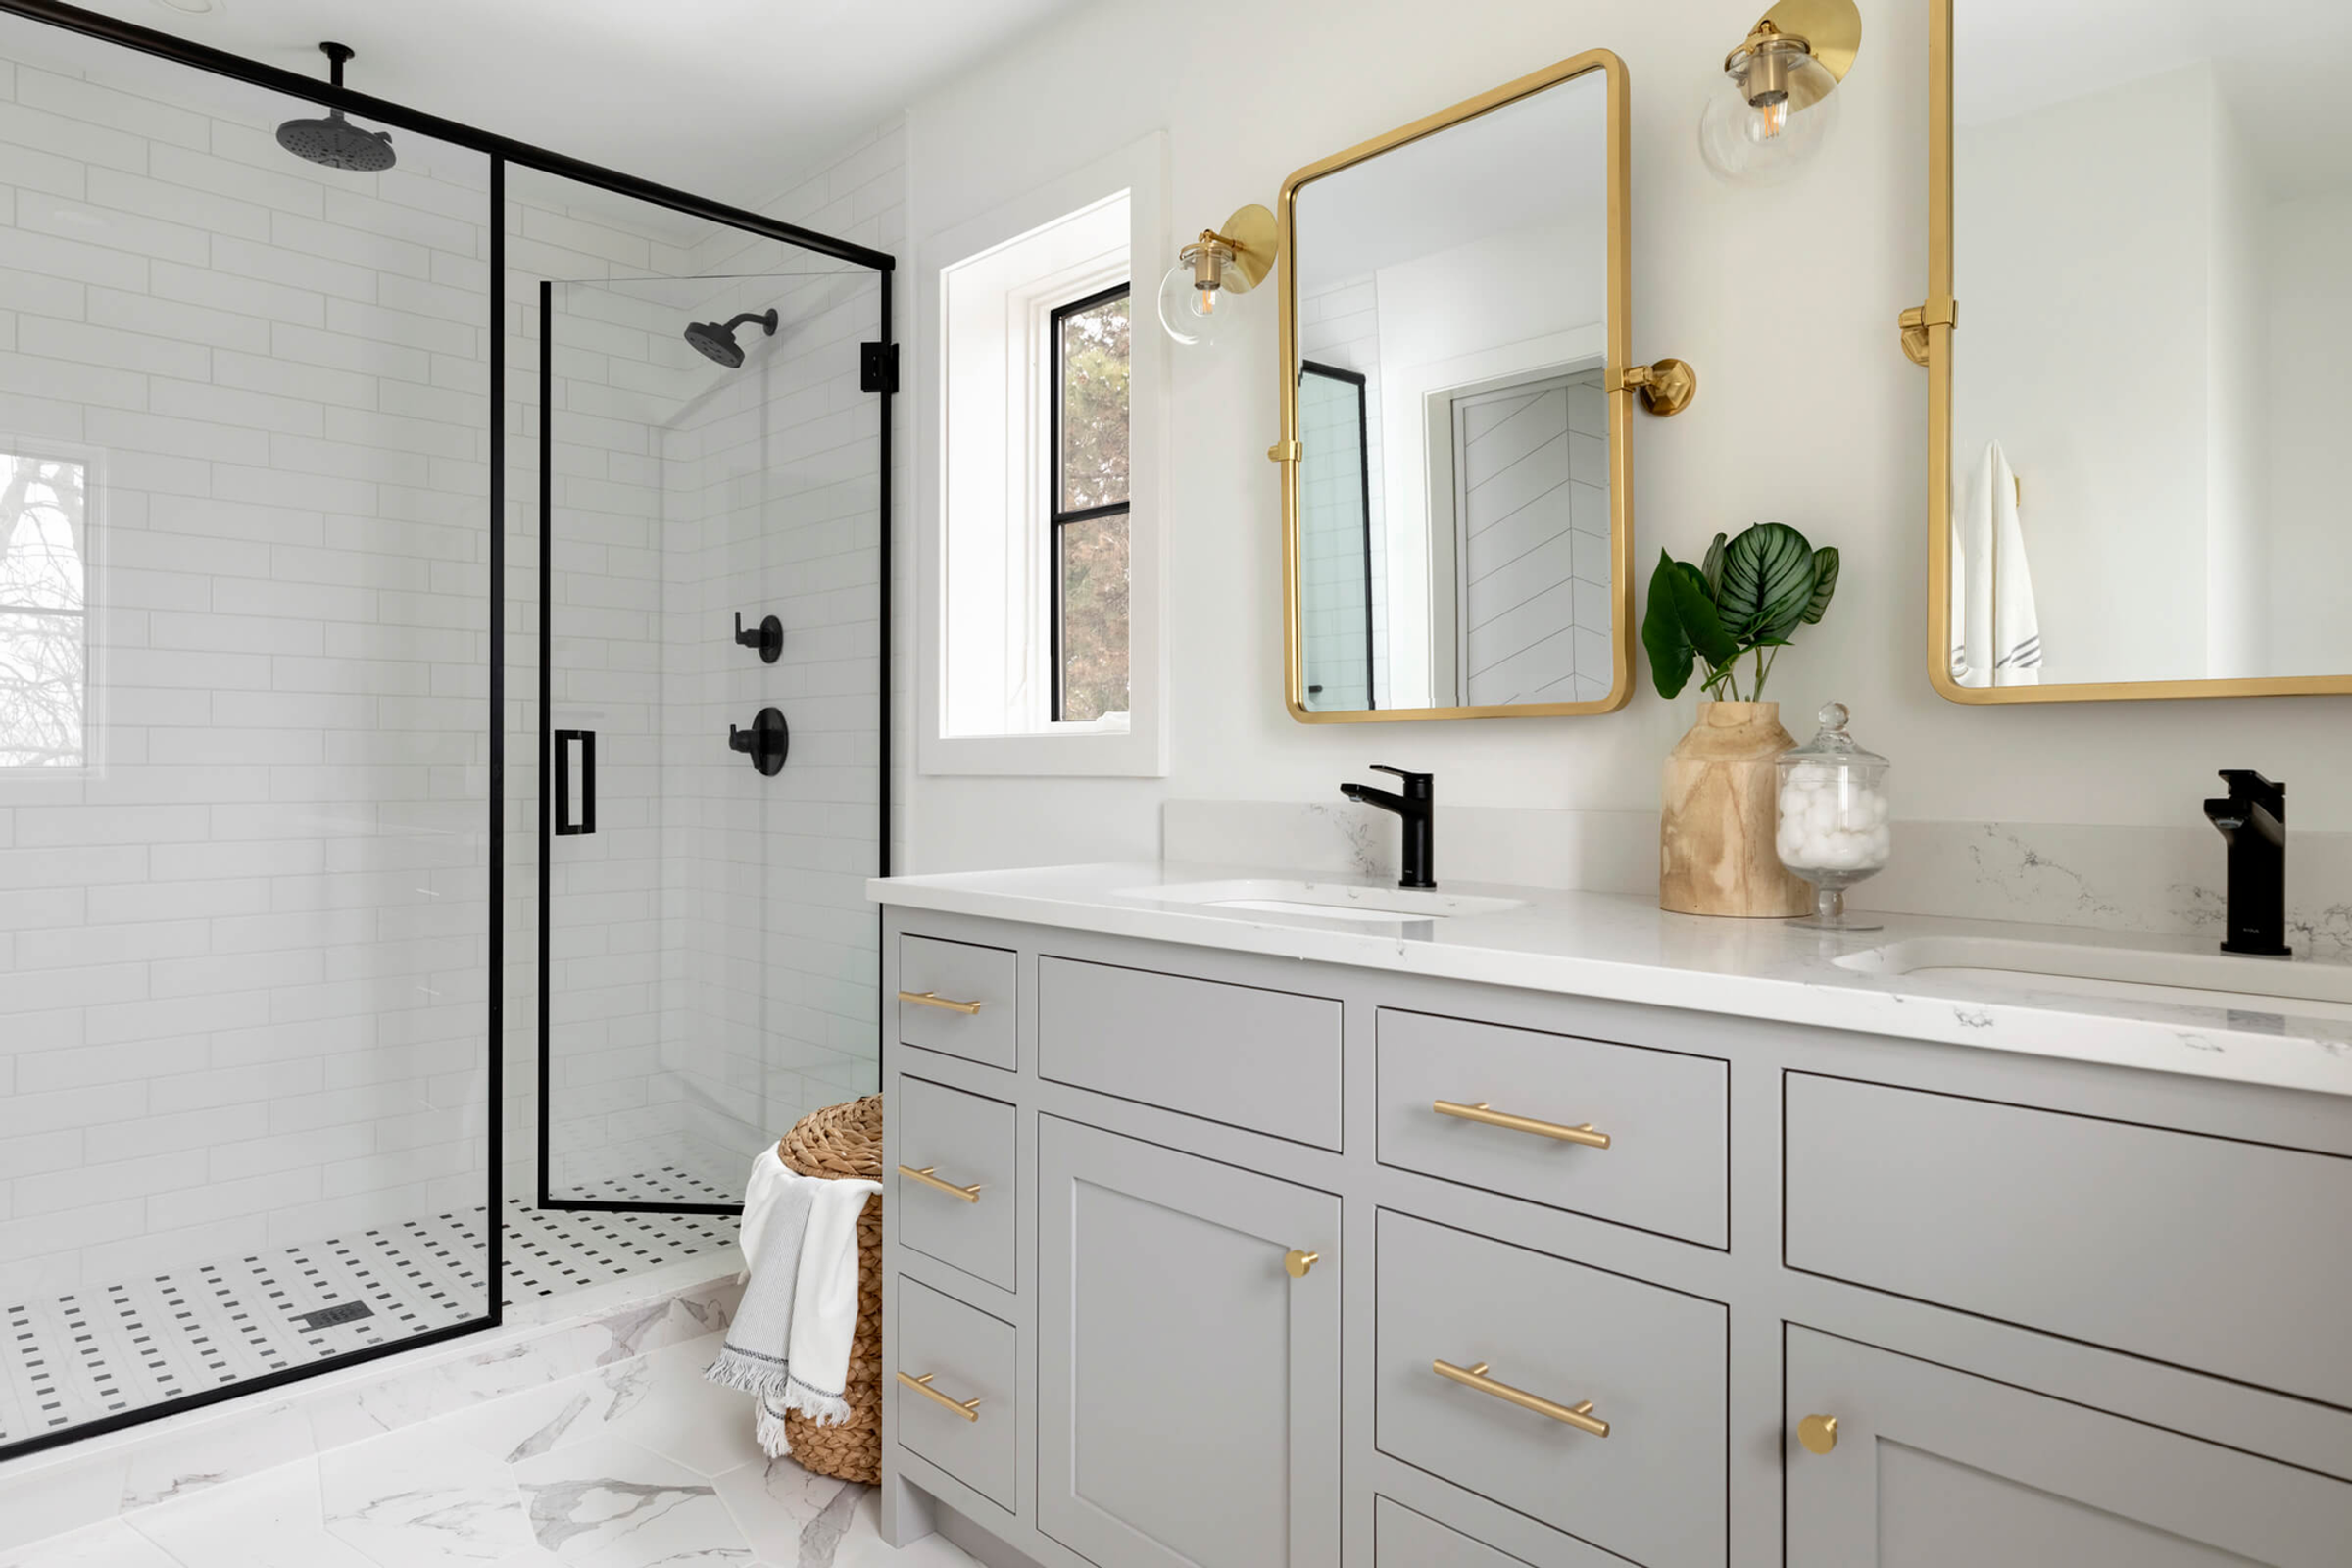 Before And After Master Suite Bedroom And Bathroom Black And Gold Bathroom Gold Bathroom Fixtures Bathroom Remodel Designs